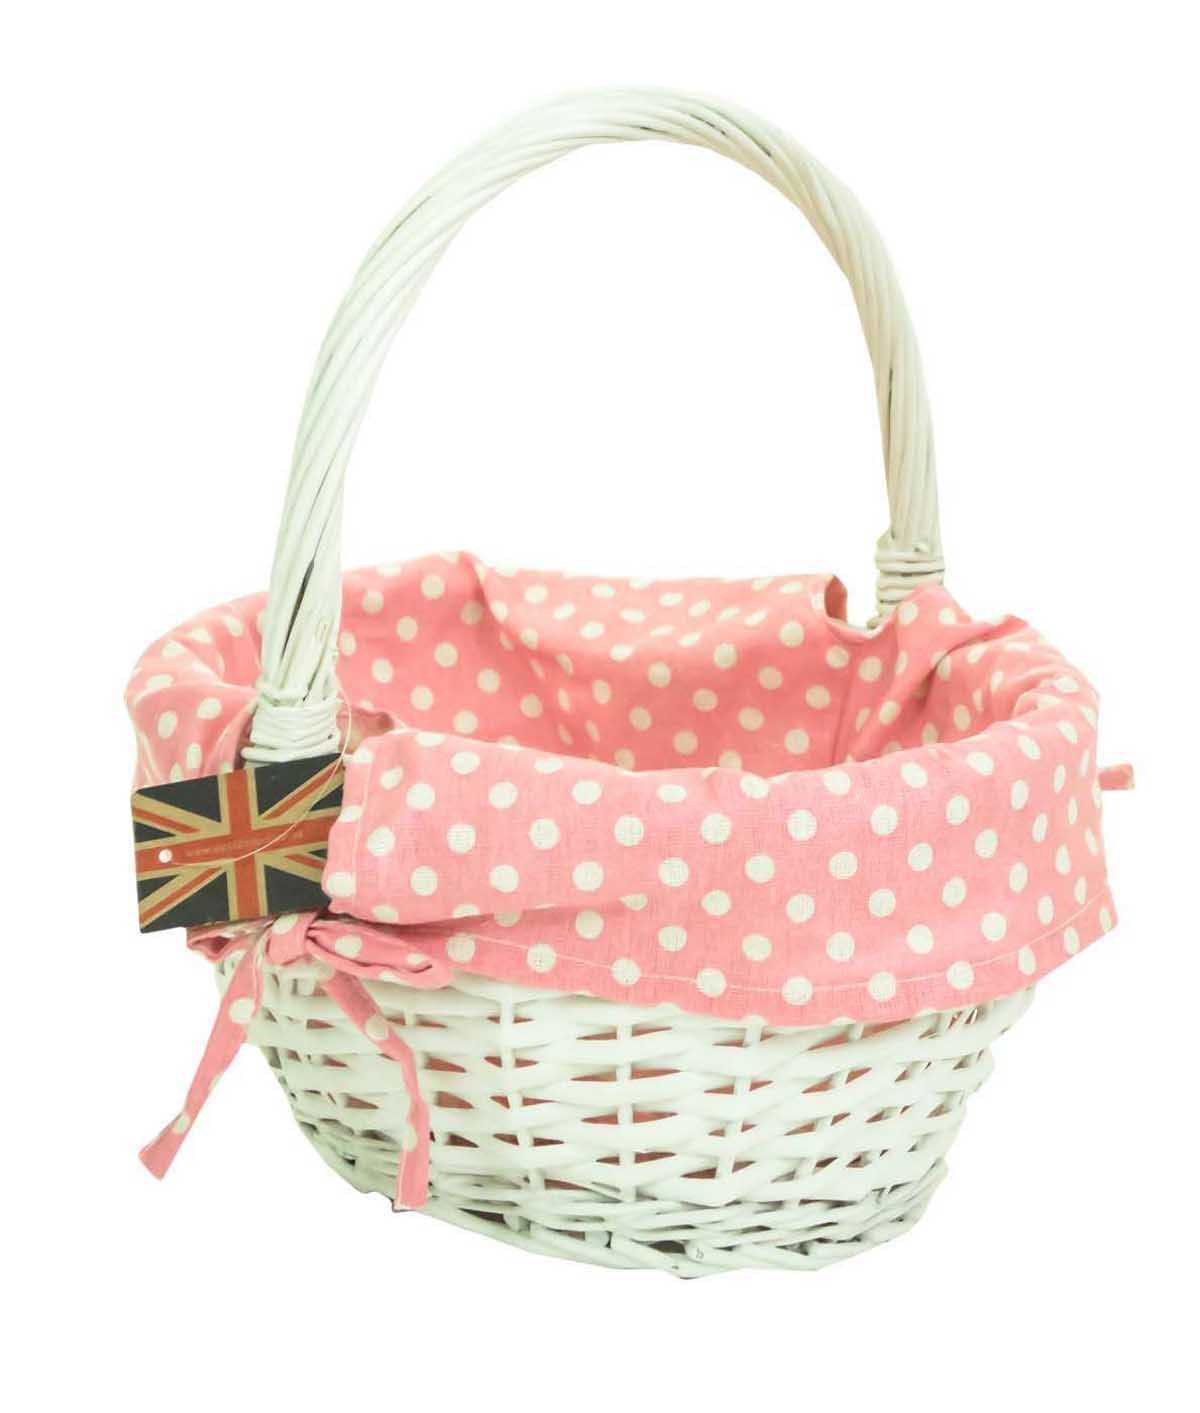 Traditional Small Wicker Basket With Liner&handle : White willow wicker traditional ping easter basket